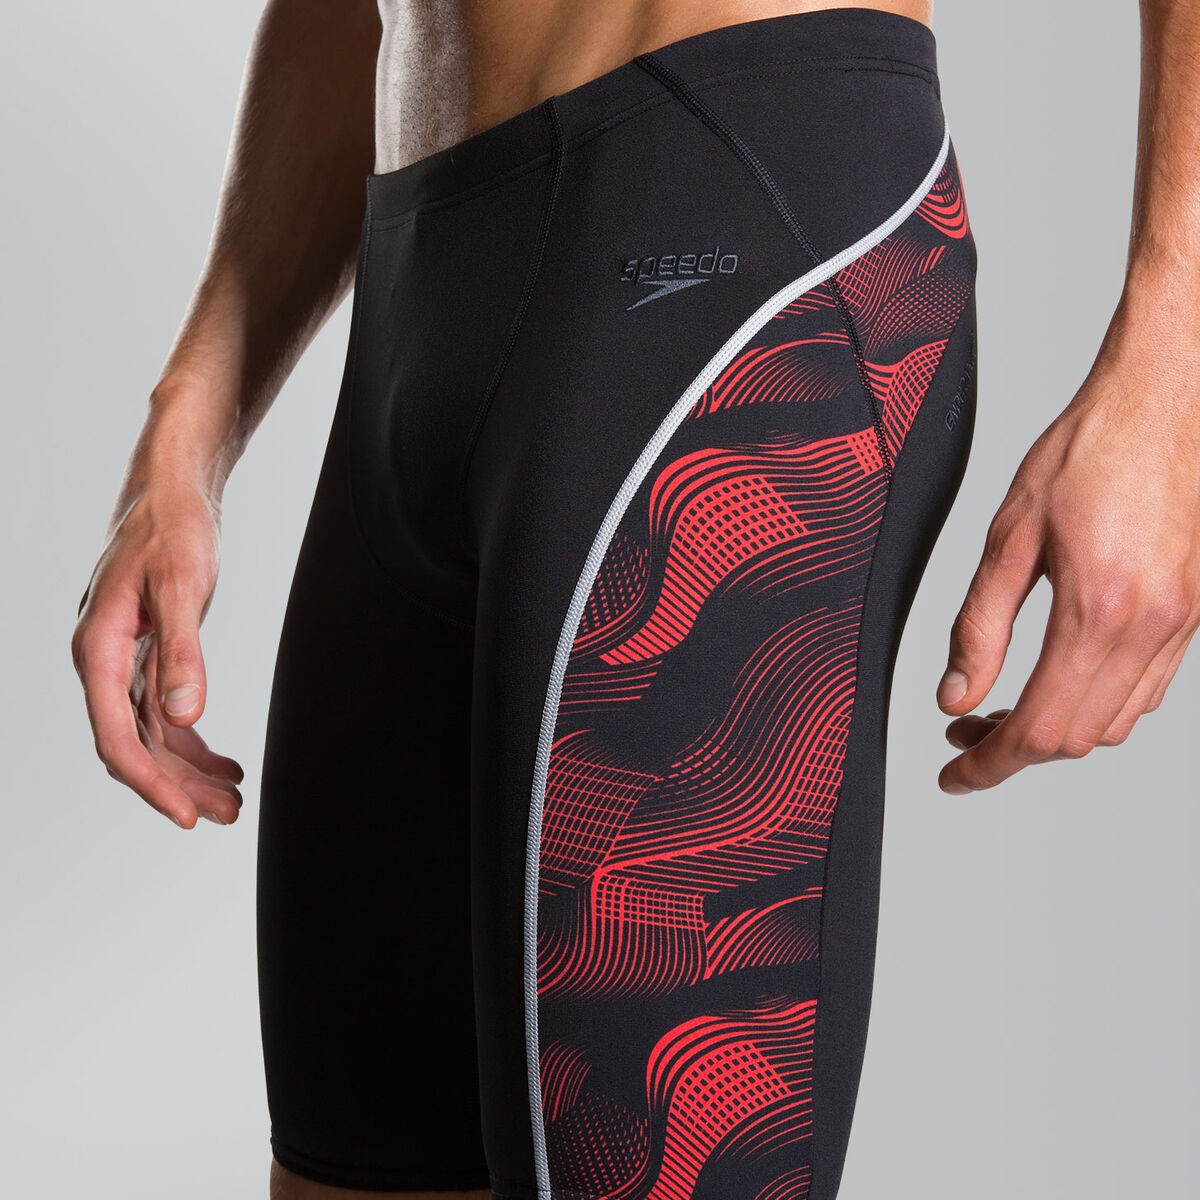 Speedo Fit Graphic Jammer